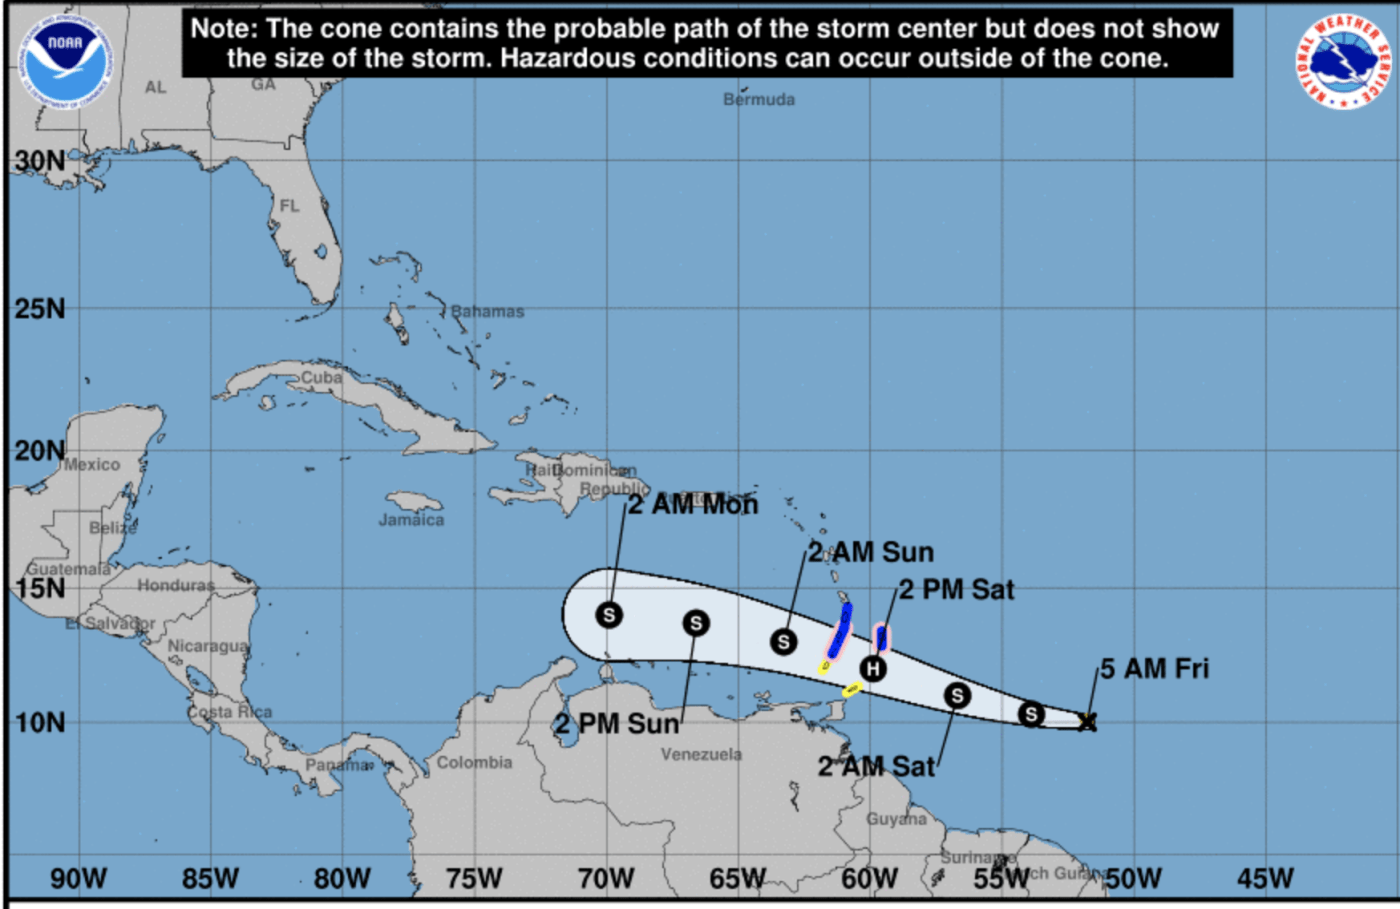 TS Gonzalo expected to be first hurricane of the season